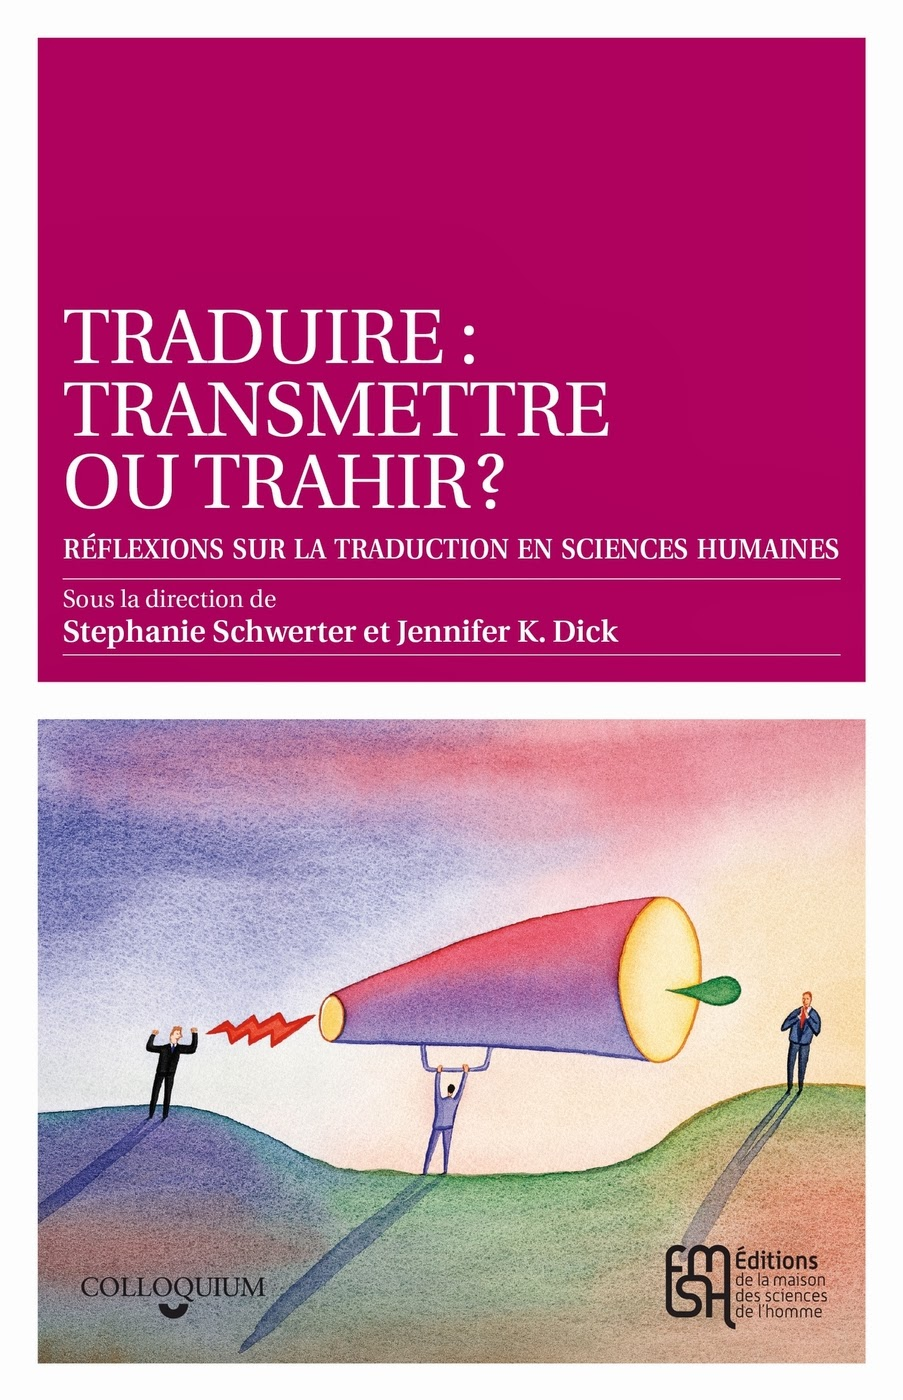 TRADUIRE: transmettre ou trahir?  Edited by Jennifer K Dick and Stephanie Schwerter